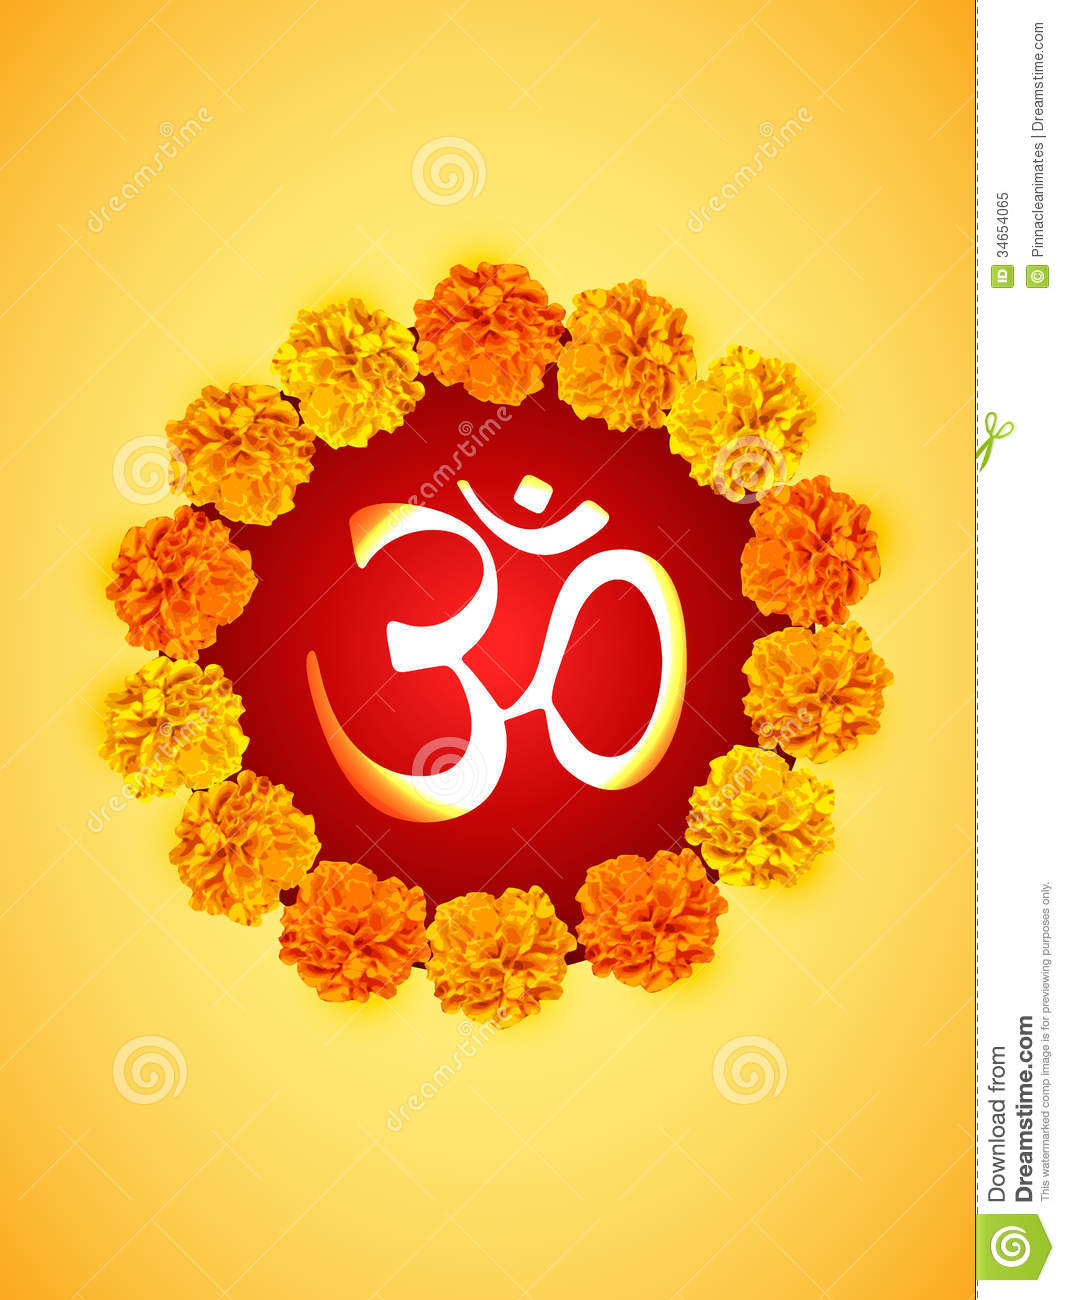 Om symbol royalty free stock photo image 34654065 Om picture download